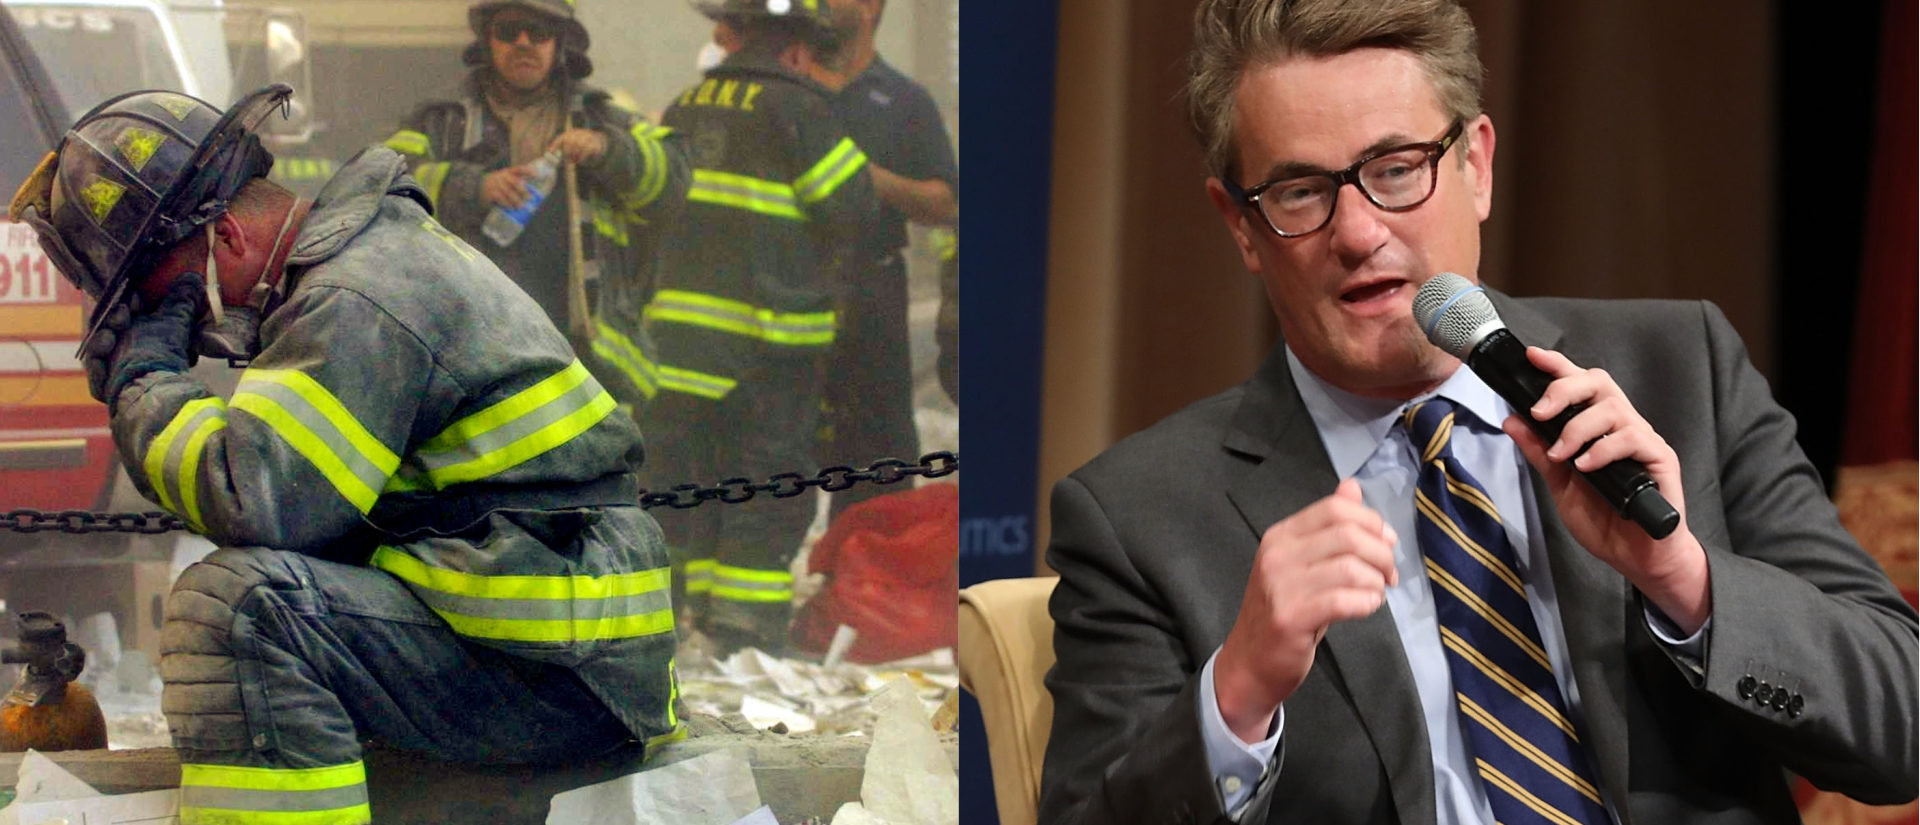 The September 11 Washington Post op-ed by MSNBC's Joe Scarborough was a slap in the face / Getty Images